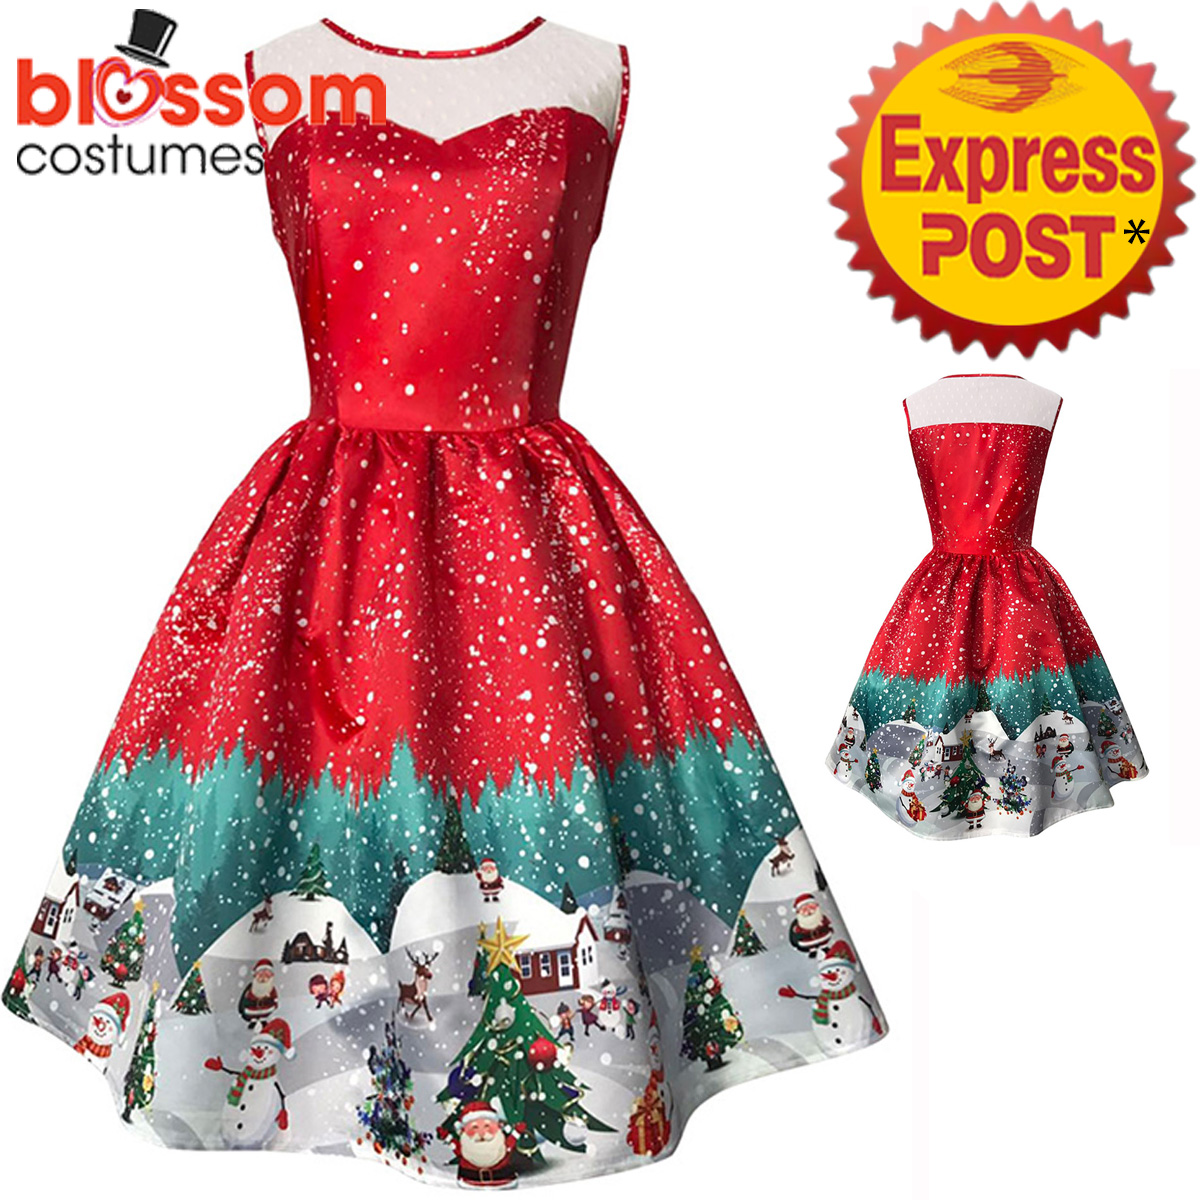 K443-Ladies-Red-Santa-Christmas-Vintage-Swing-Dress-Snowflake-Xmas-Rockabilly